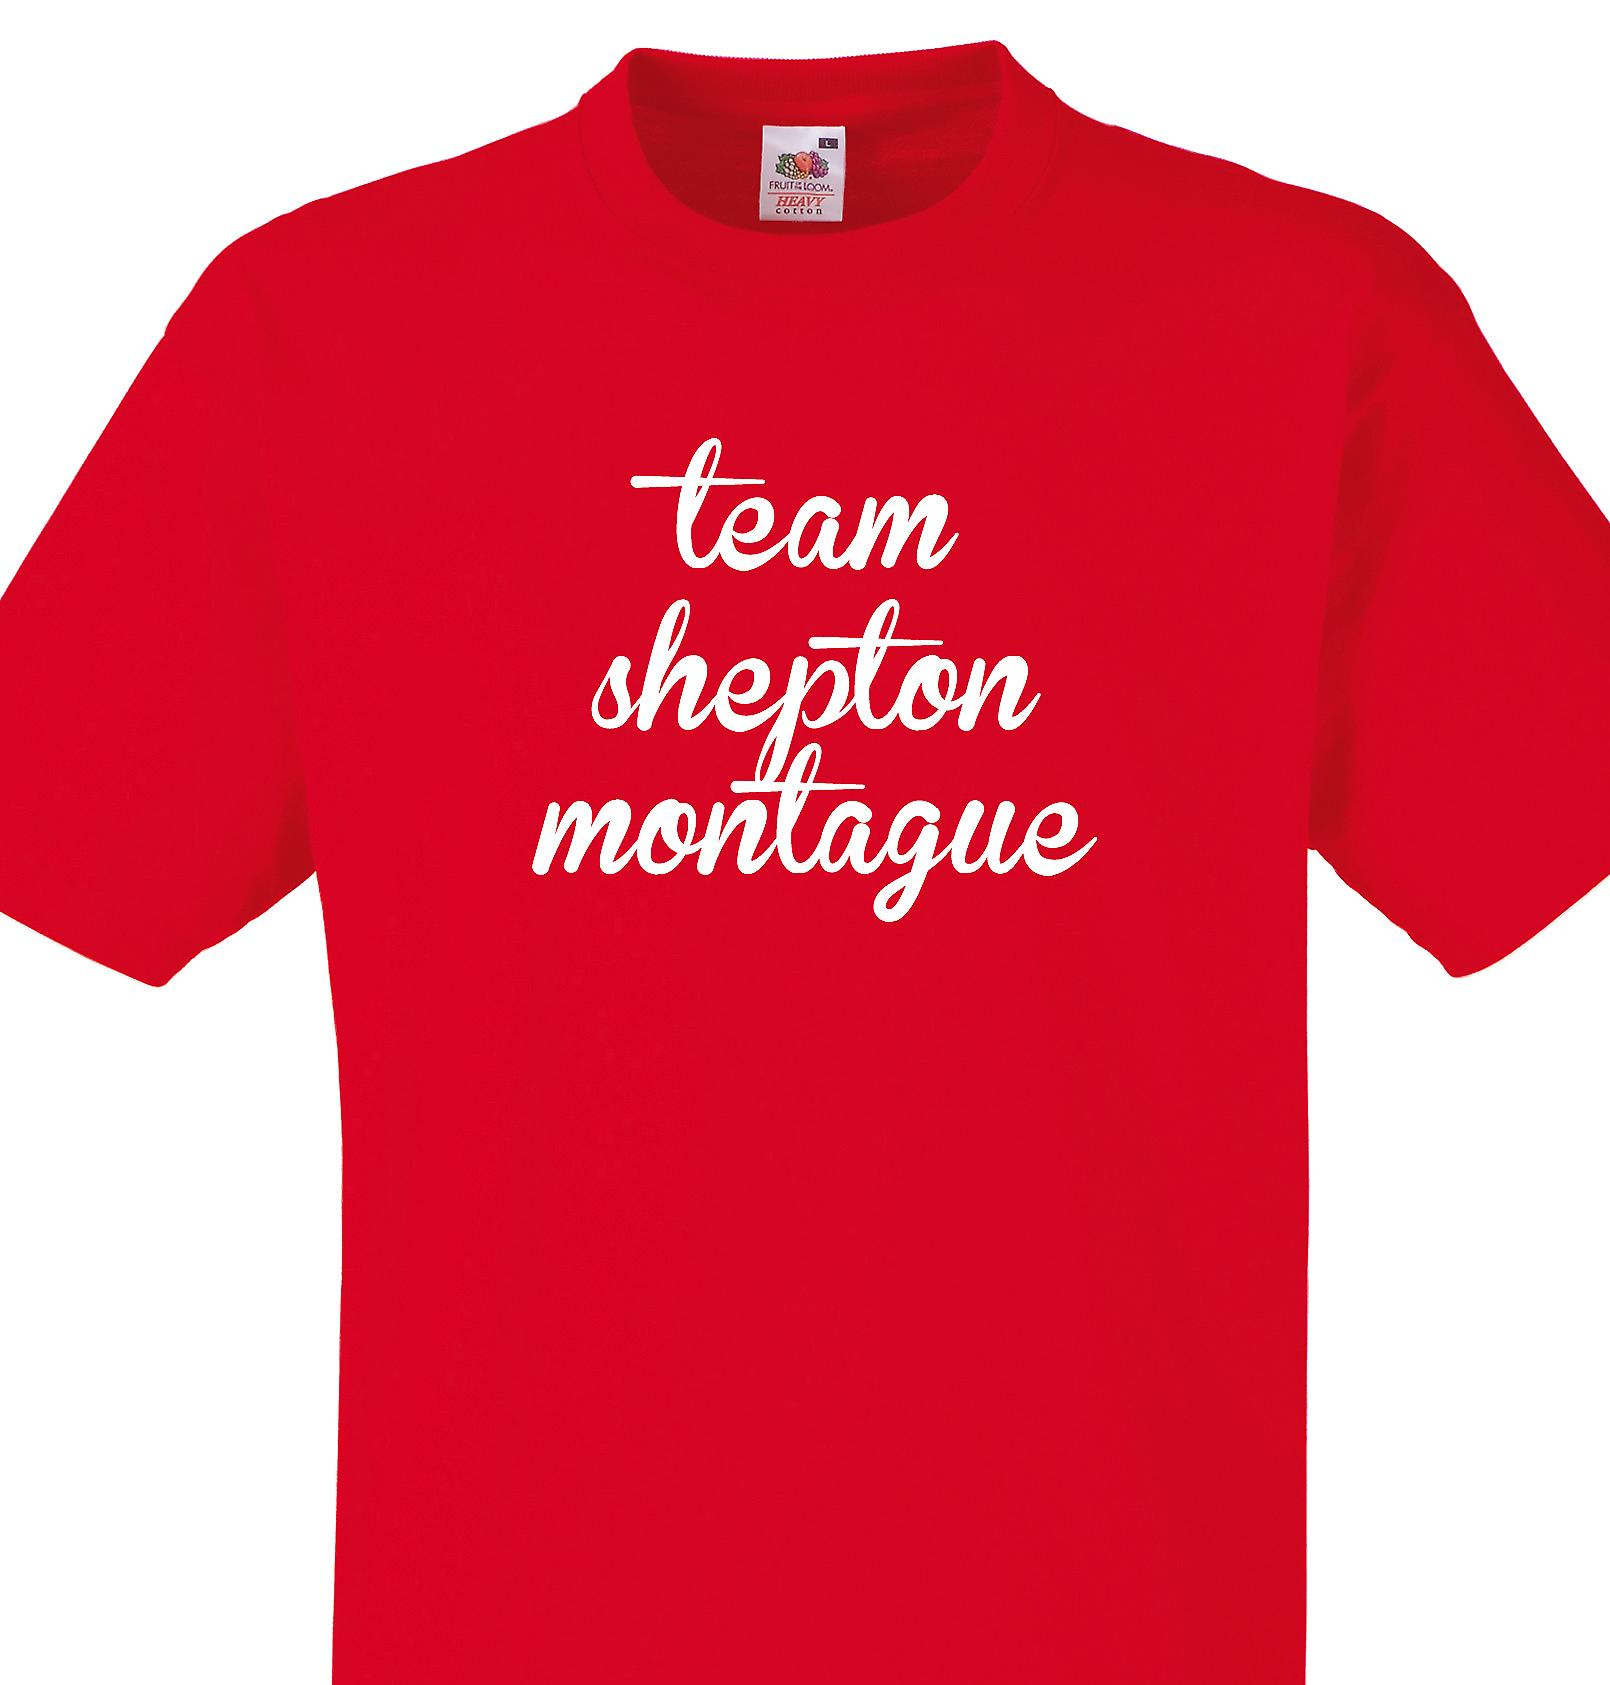 Team Shepton montague Red T shirt